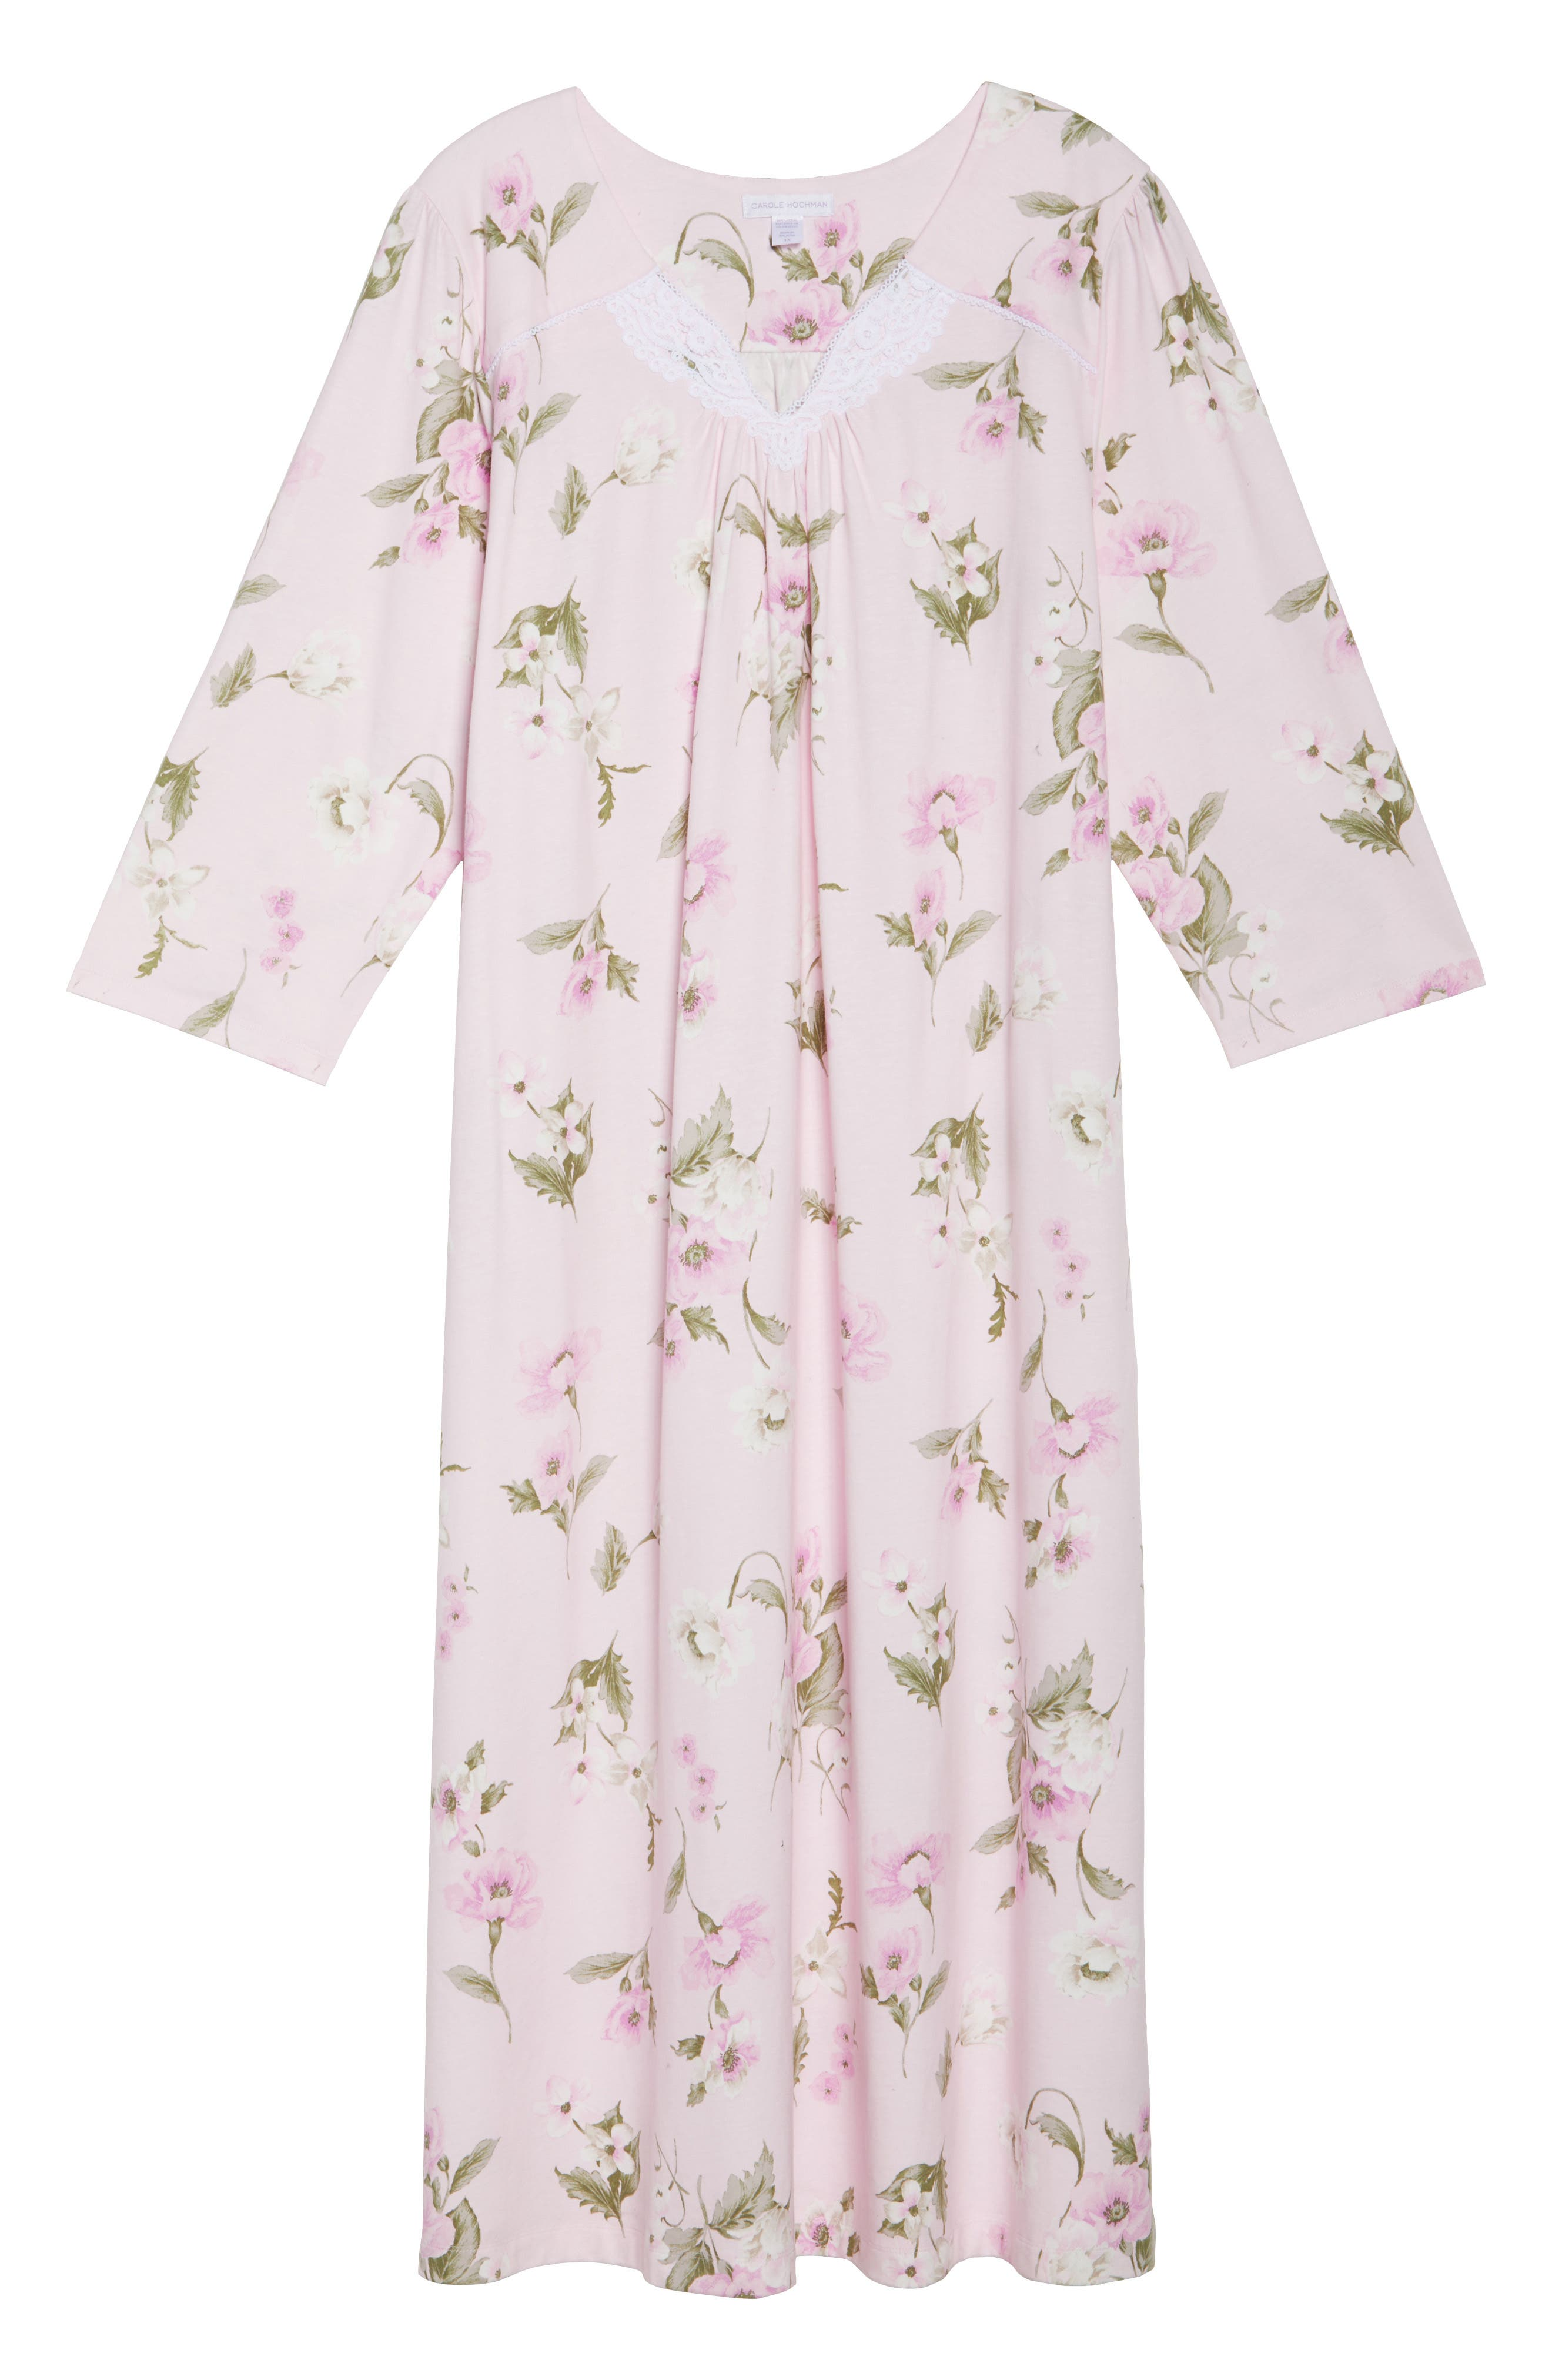 Knit Nightgown,                             Alternate thumbnail 6, color,                             650